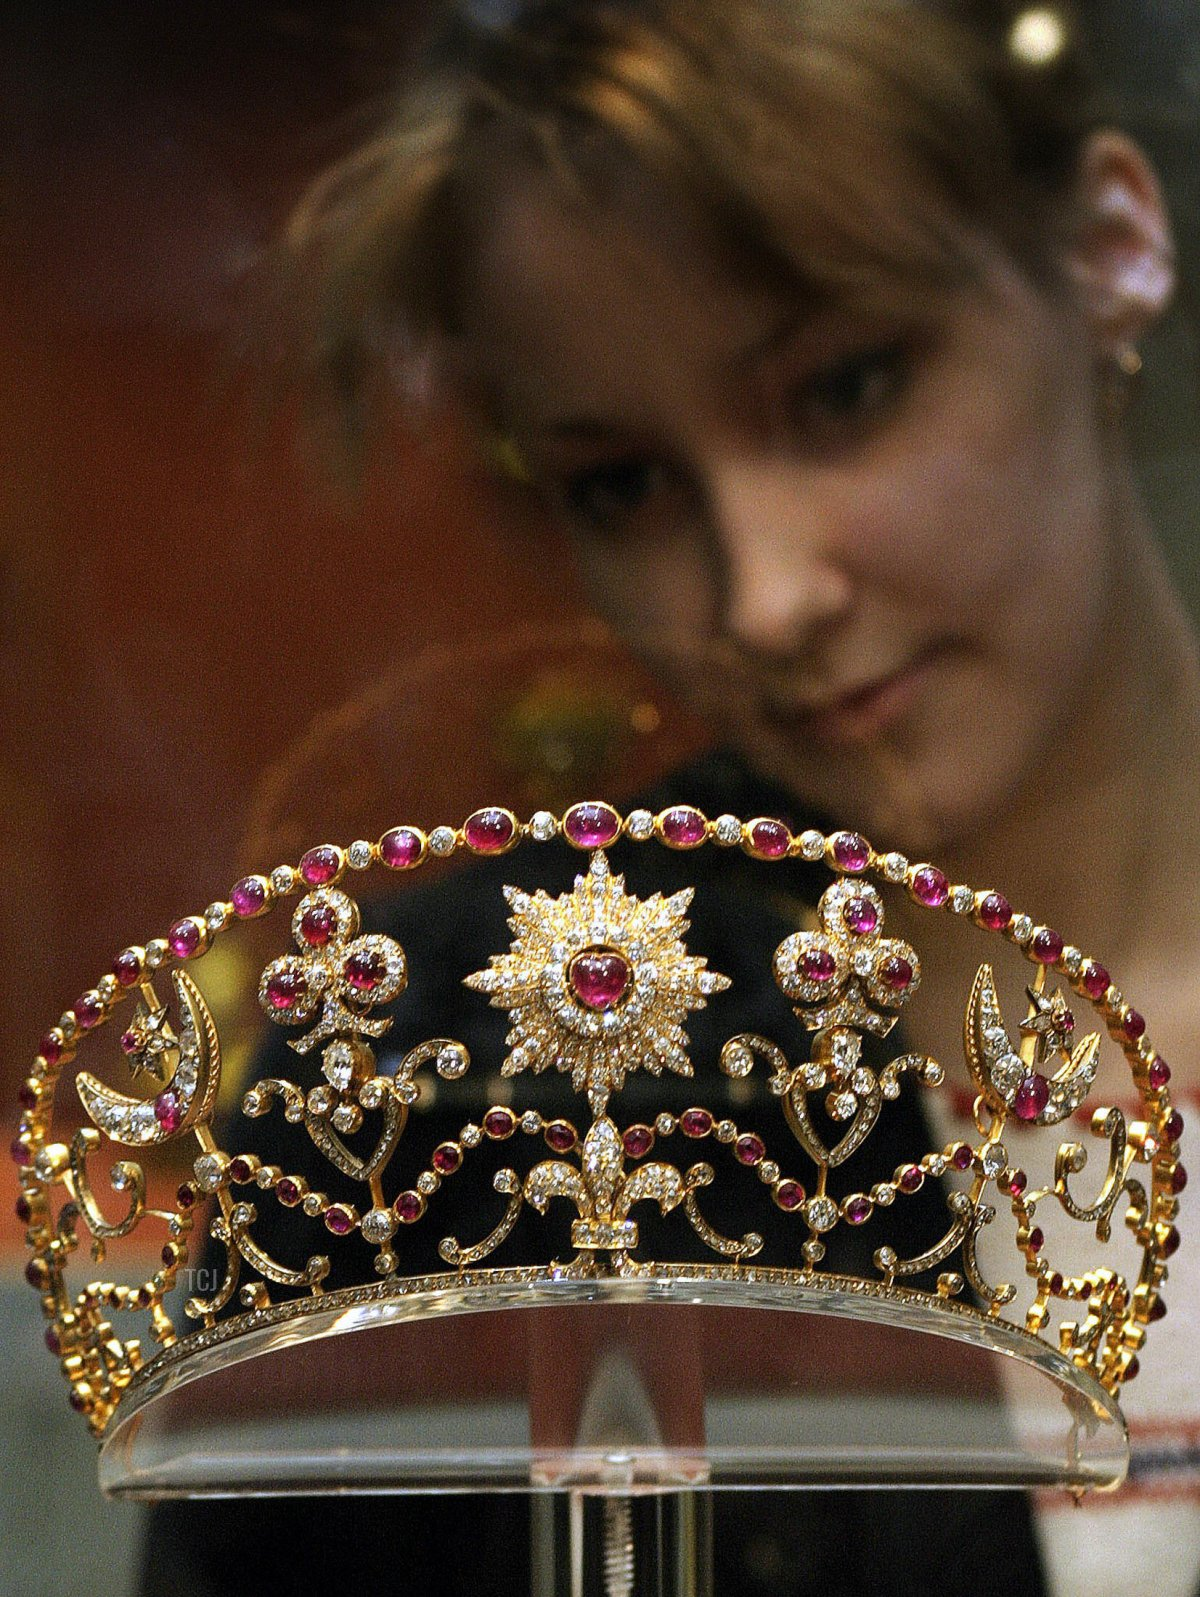 A visitor looks at a golden diadem exhibited in the Hermitage museum in St.Petersburg, 01 March 2004